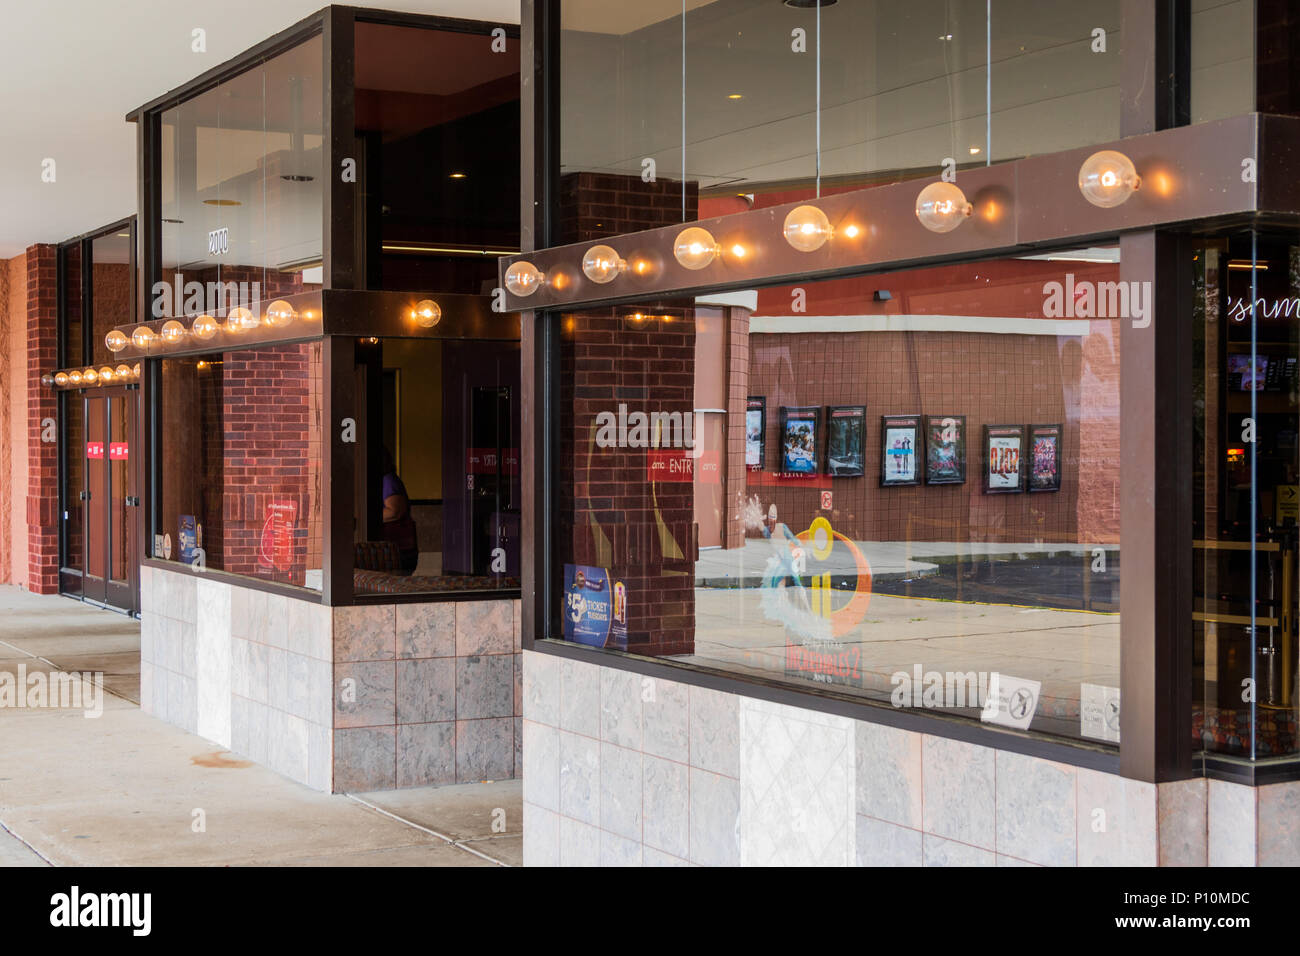 Carmike Hickory Nc >> Amc Cinema Stock Photos & Amc Cinema Stock Images - Alamy